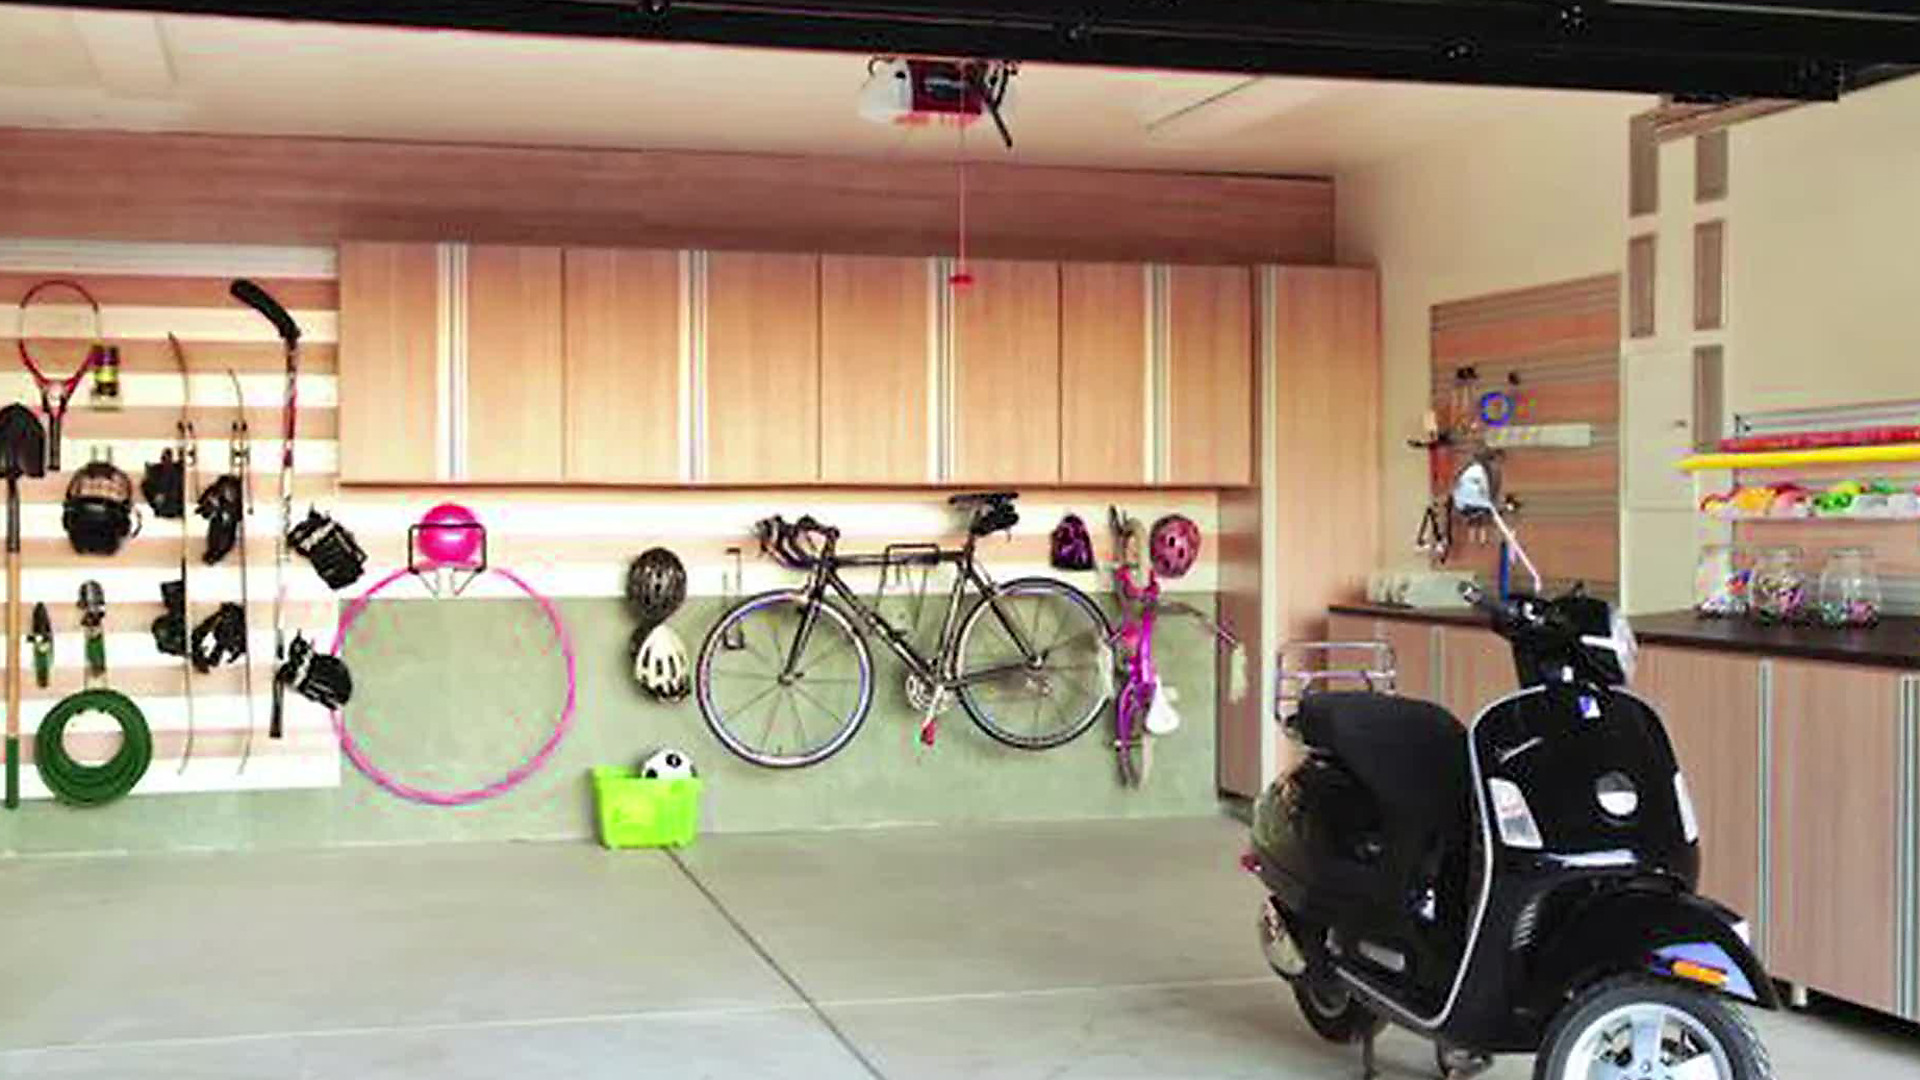 Why Do You Need Go For Garage Cleaning?